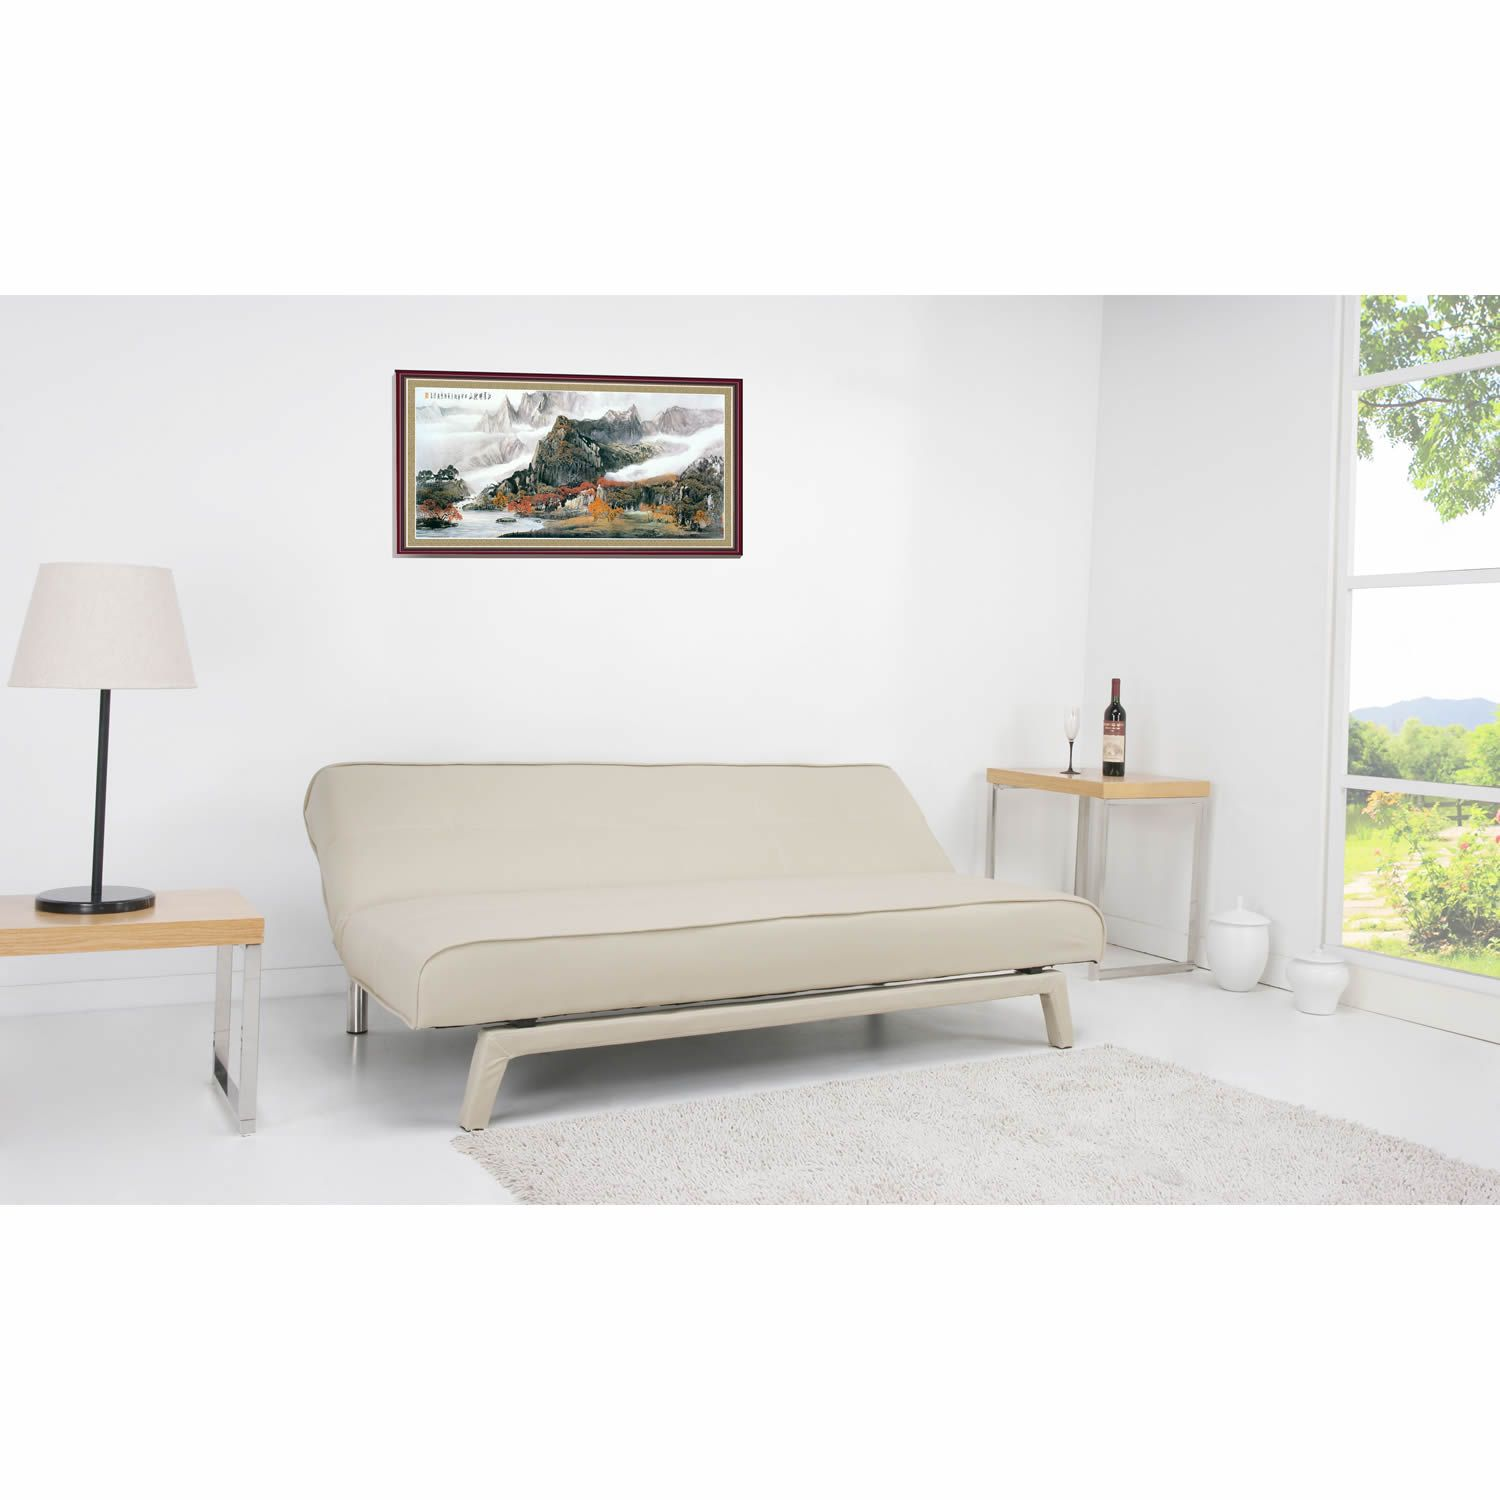 Johansson Faux Leather Sofa Bed in Cream SofaBedsWorld